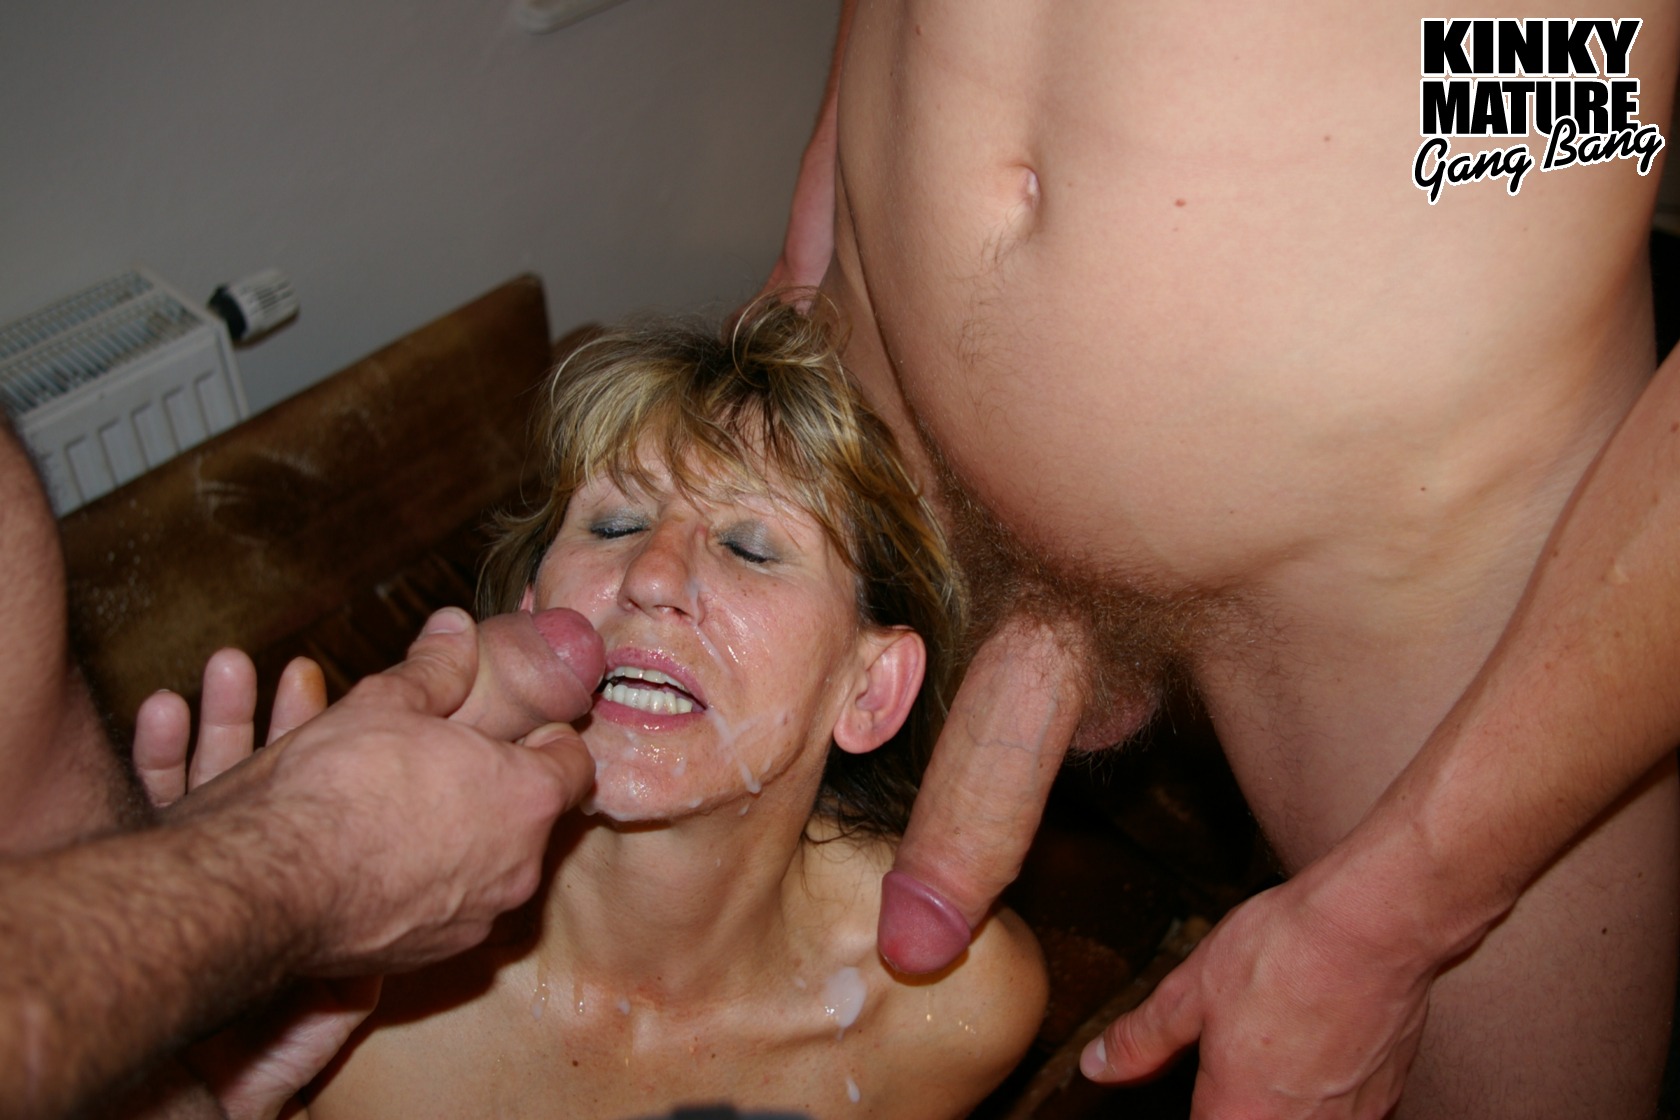 Fucking hot! Granny gangbang sex love eat